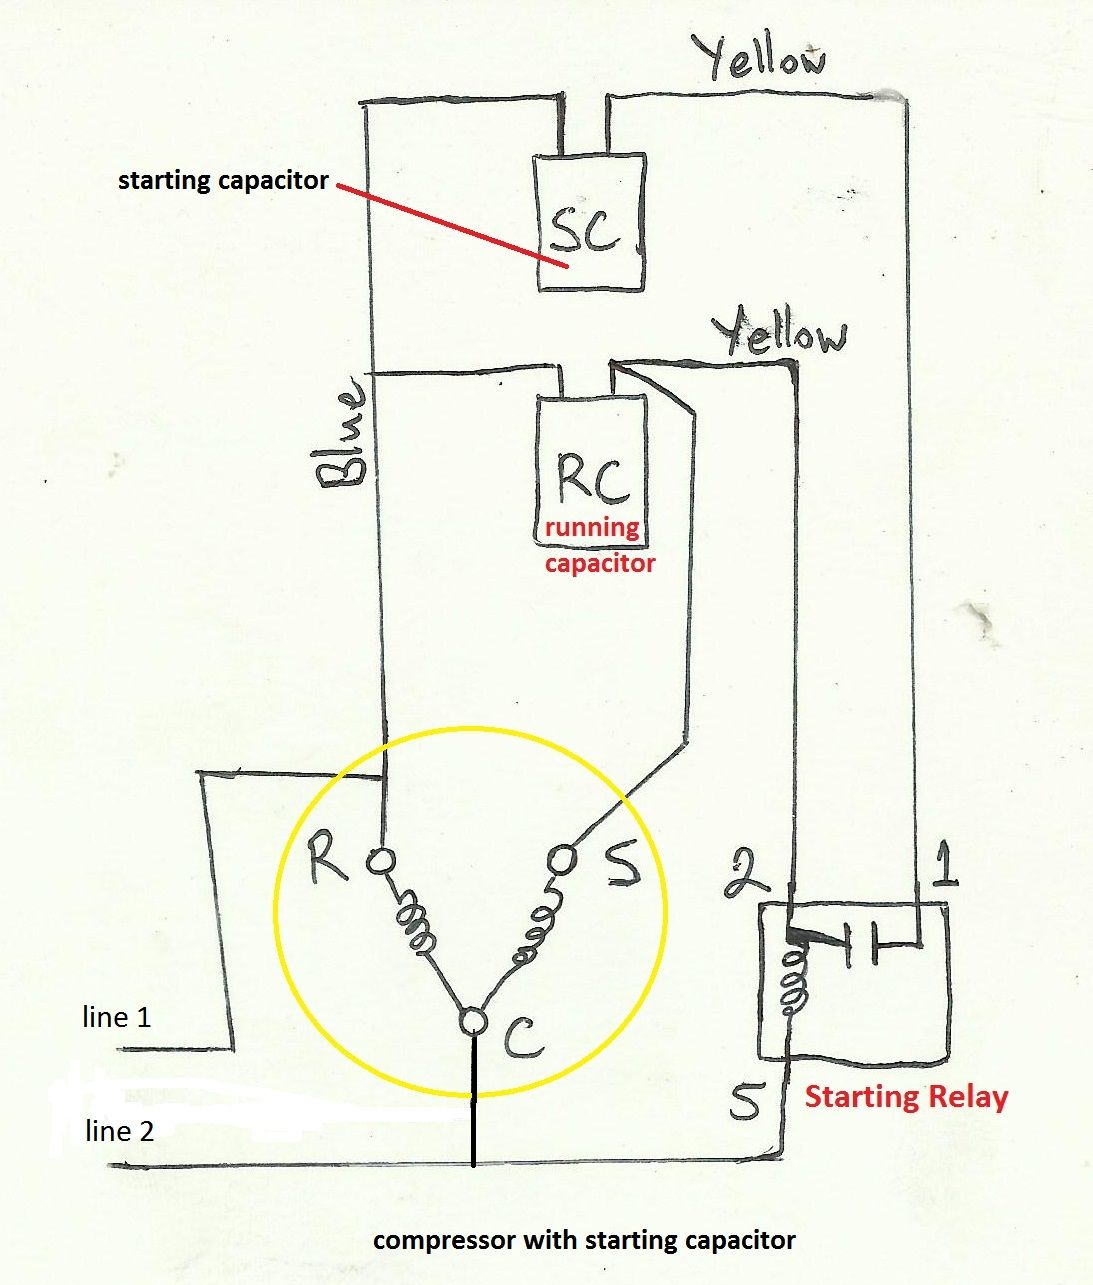 50528d800da7d87408a55b396c2aa5e6 ac capacitor wiring diagram ac fan motor wiring diagram \u2022 wiring run capacitor wiring diagram air conditioner at soozxer.org